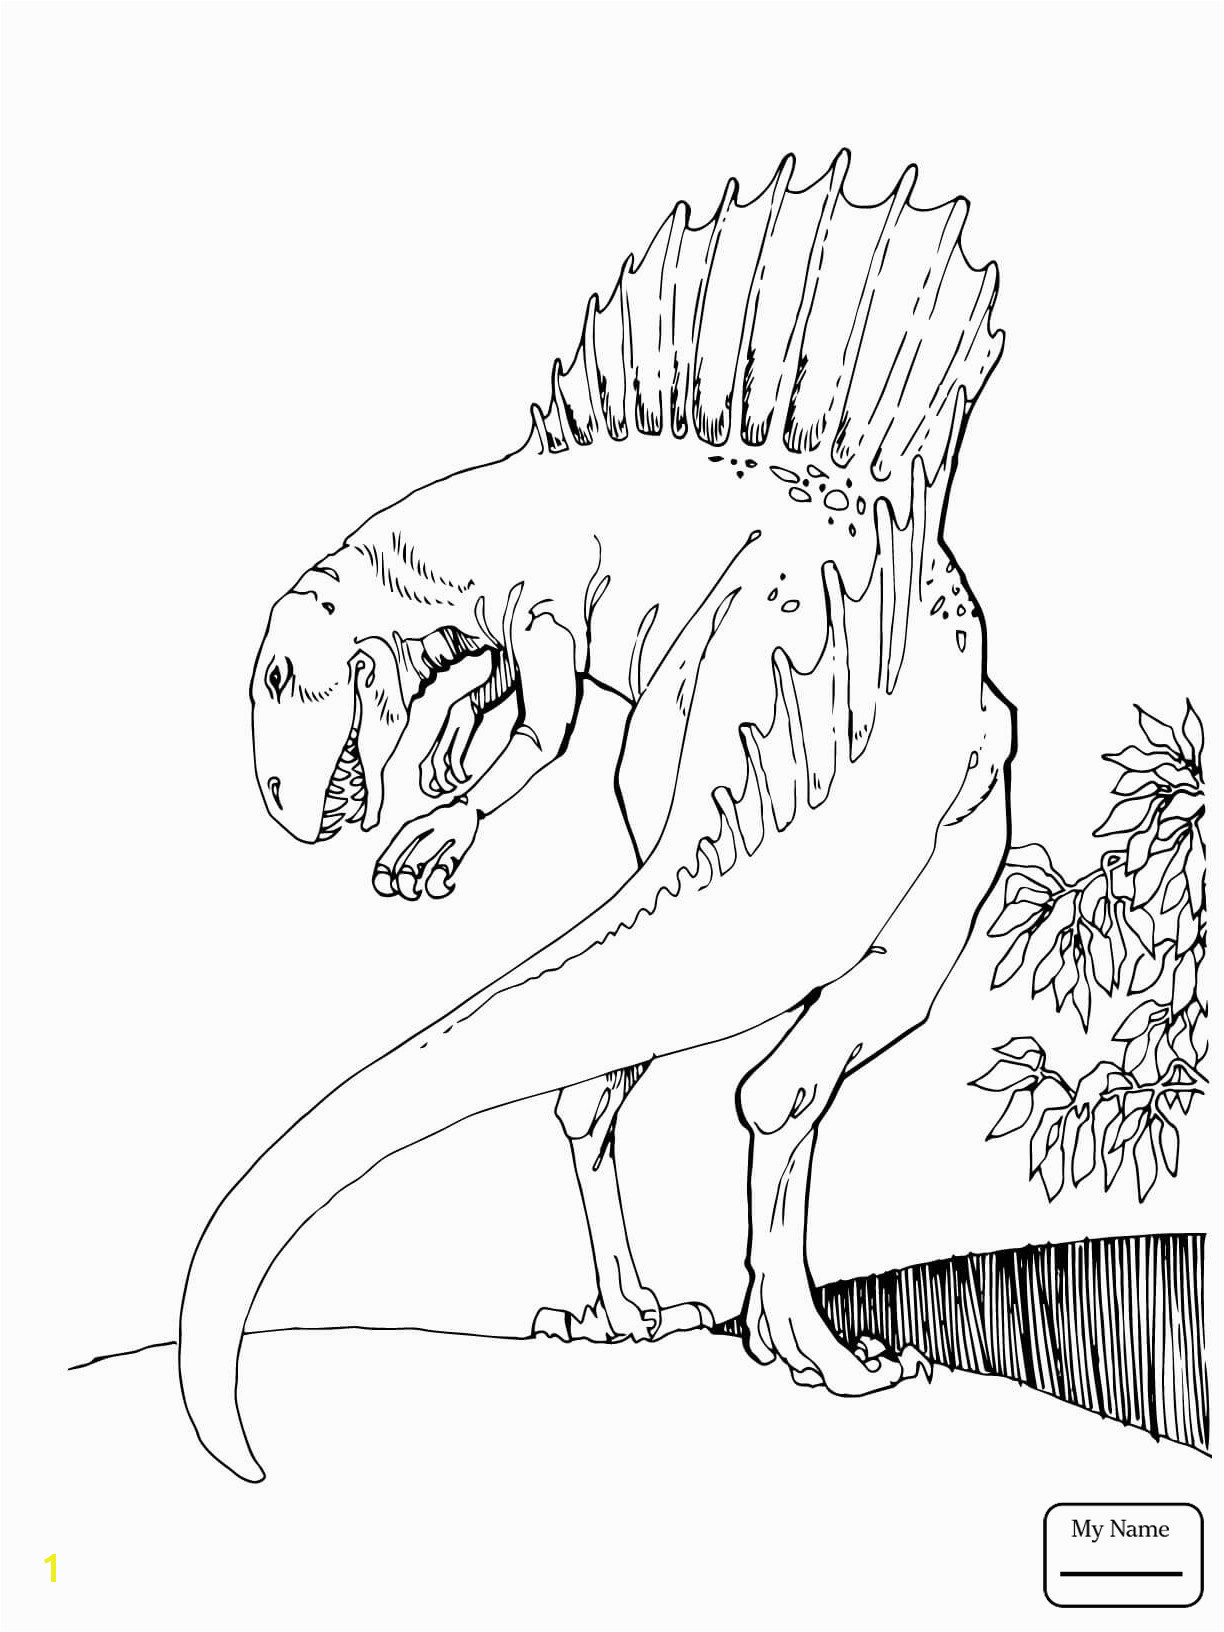 14 Awesome Tyrannosaurus Rex Coloring Page S Luxus T Rex Ausmalbilder